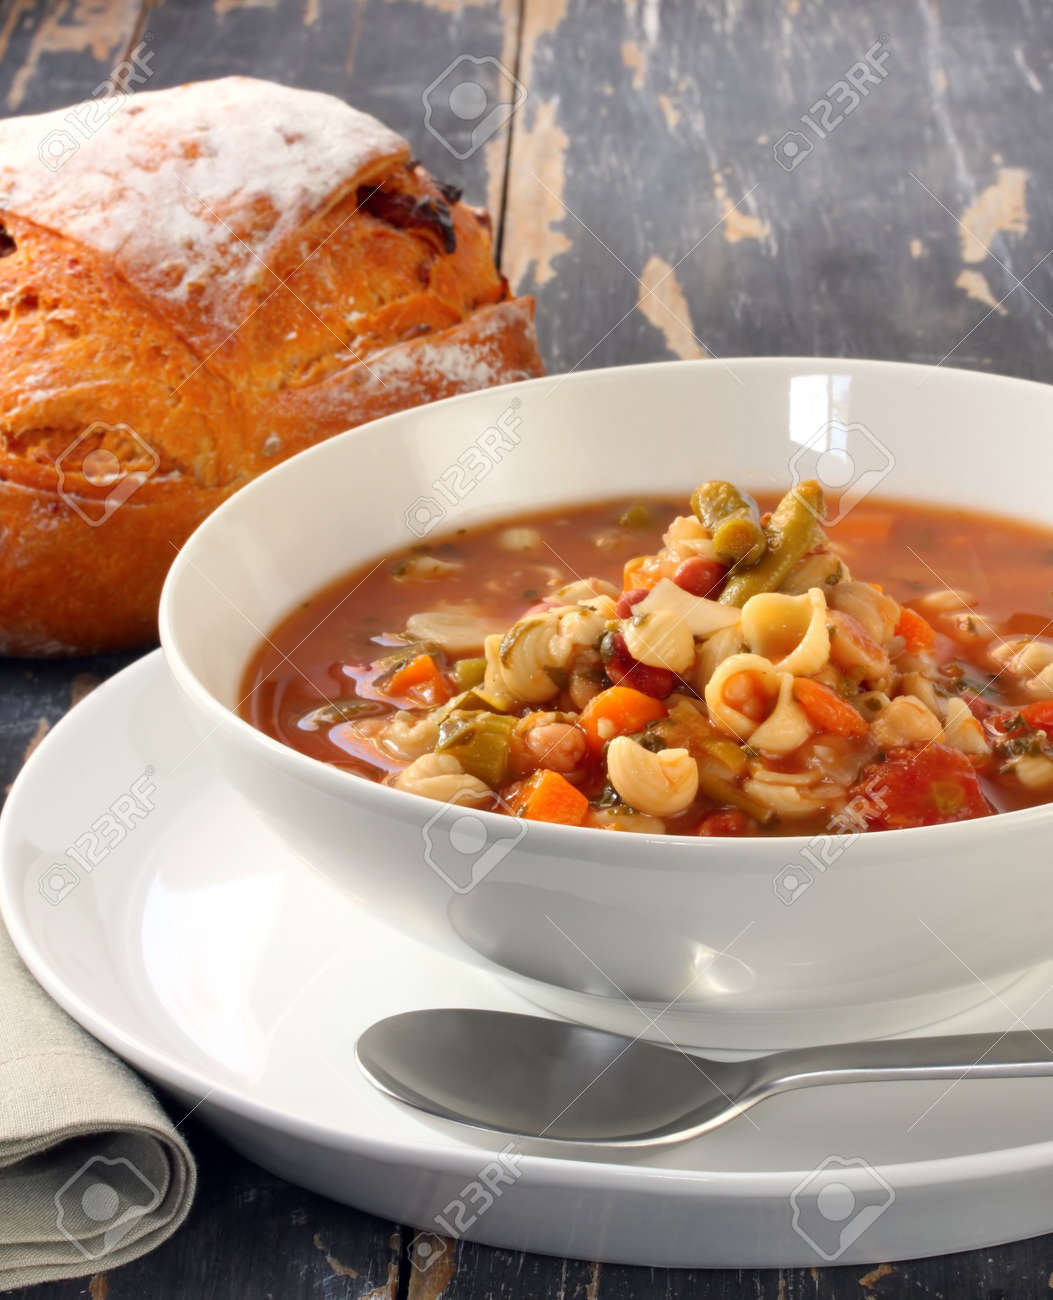 Minestrone pasta soup on rustic table, with fresh-baked cob of bread. Standard-Bild - 3161774